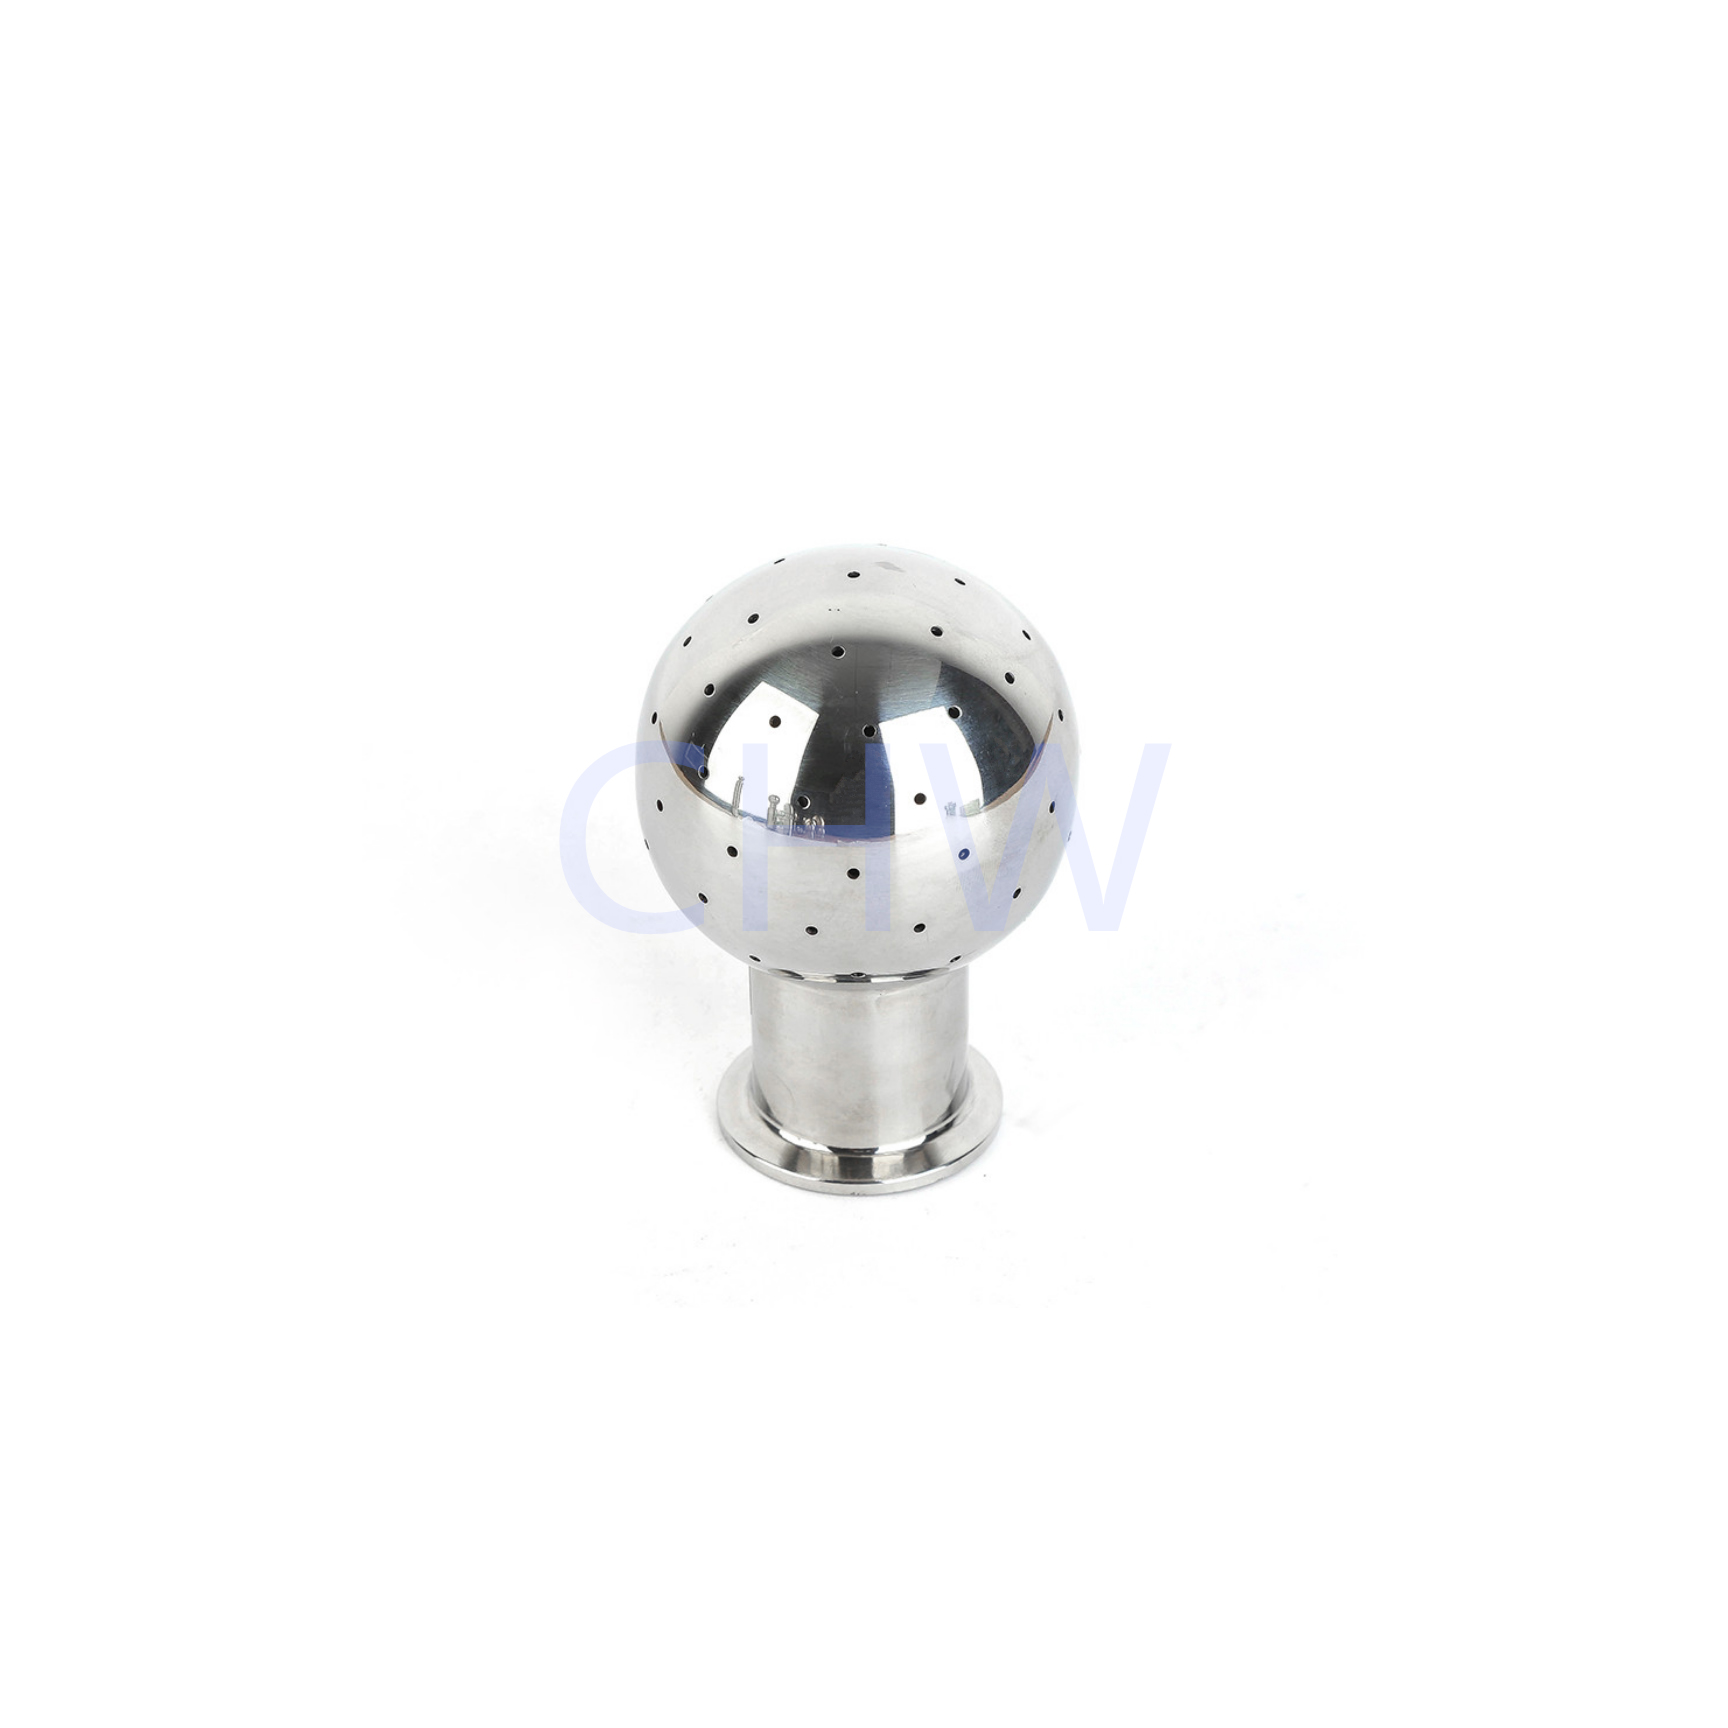 high quality Sanitary stainless steel Welded Rotary Cleaning Ball ss304 ss316L DIN SMS ISO 3A BPE IDF AS BS